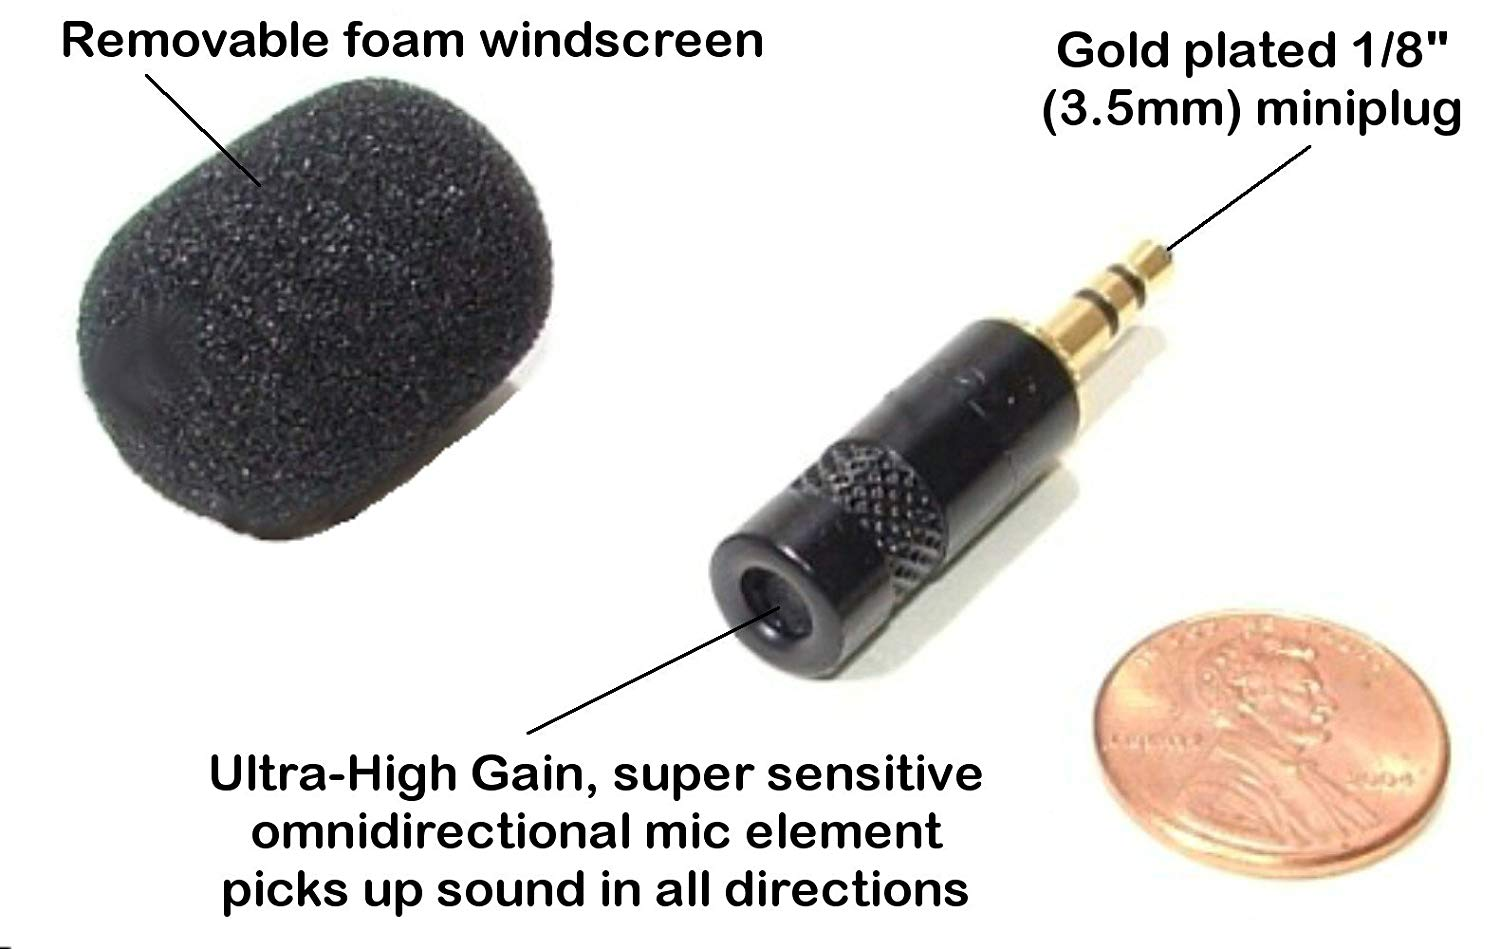 MS-MMM-1 - Master Series by Sound Professionals - Special! Super high gain, high sensitivity Steno machine and laptop mini omnidirectional microphone for court reporters - Made in USA.